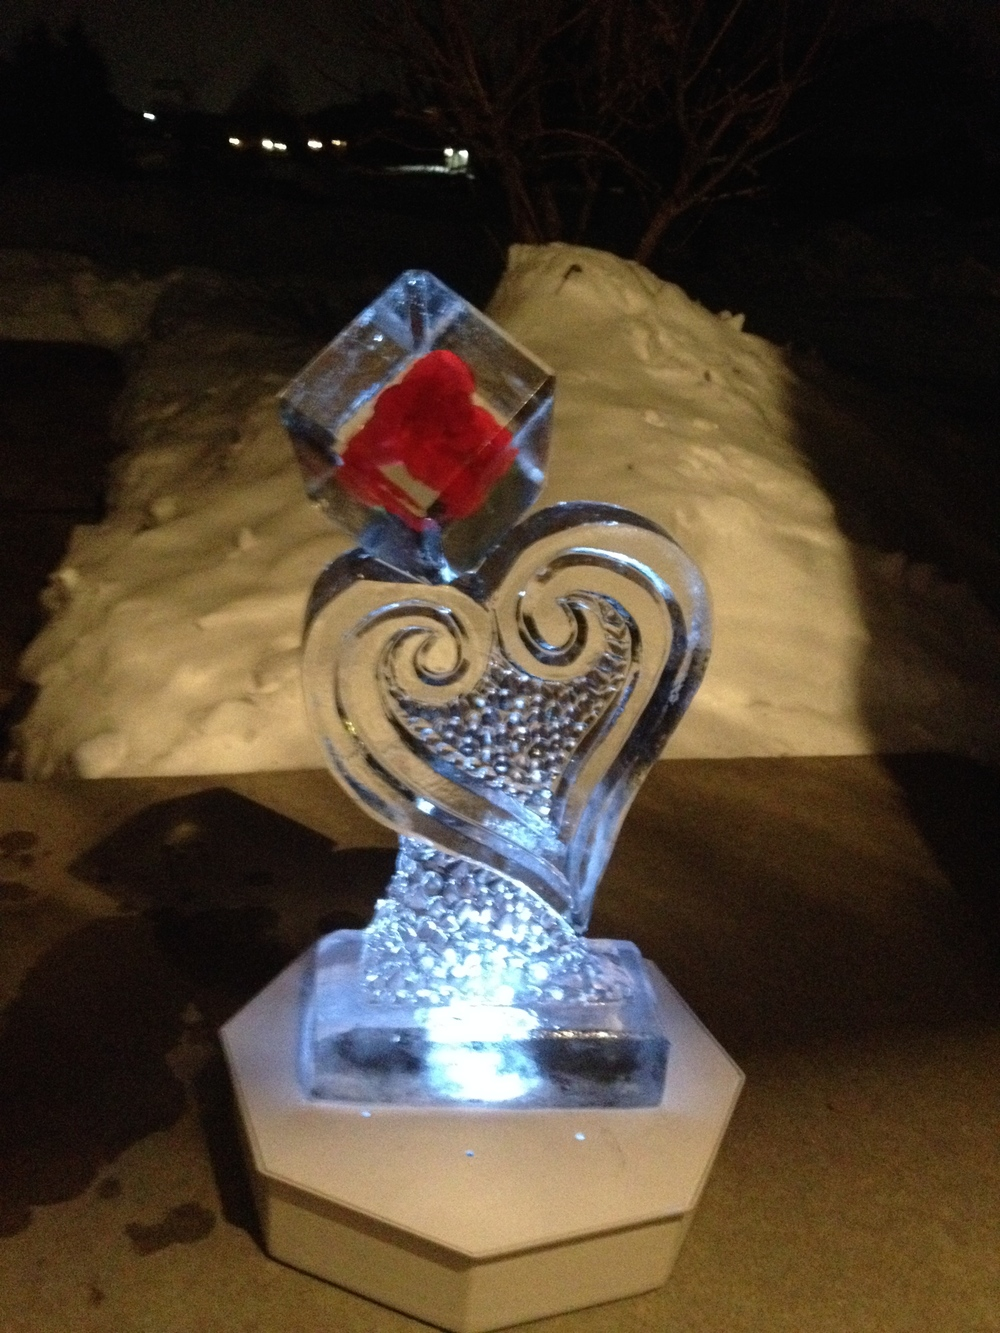 Tabletop-Ice Sculpture-Heart-Rose.jpg